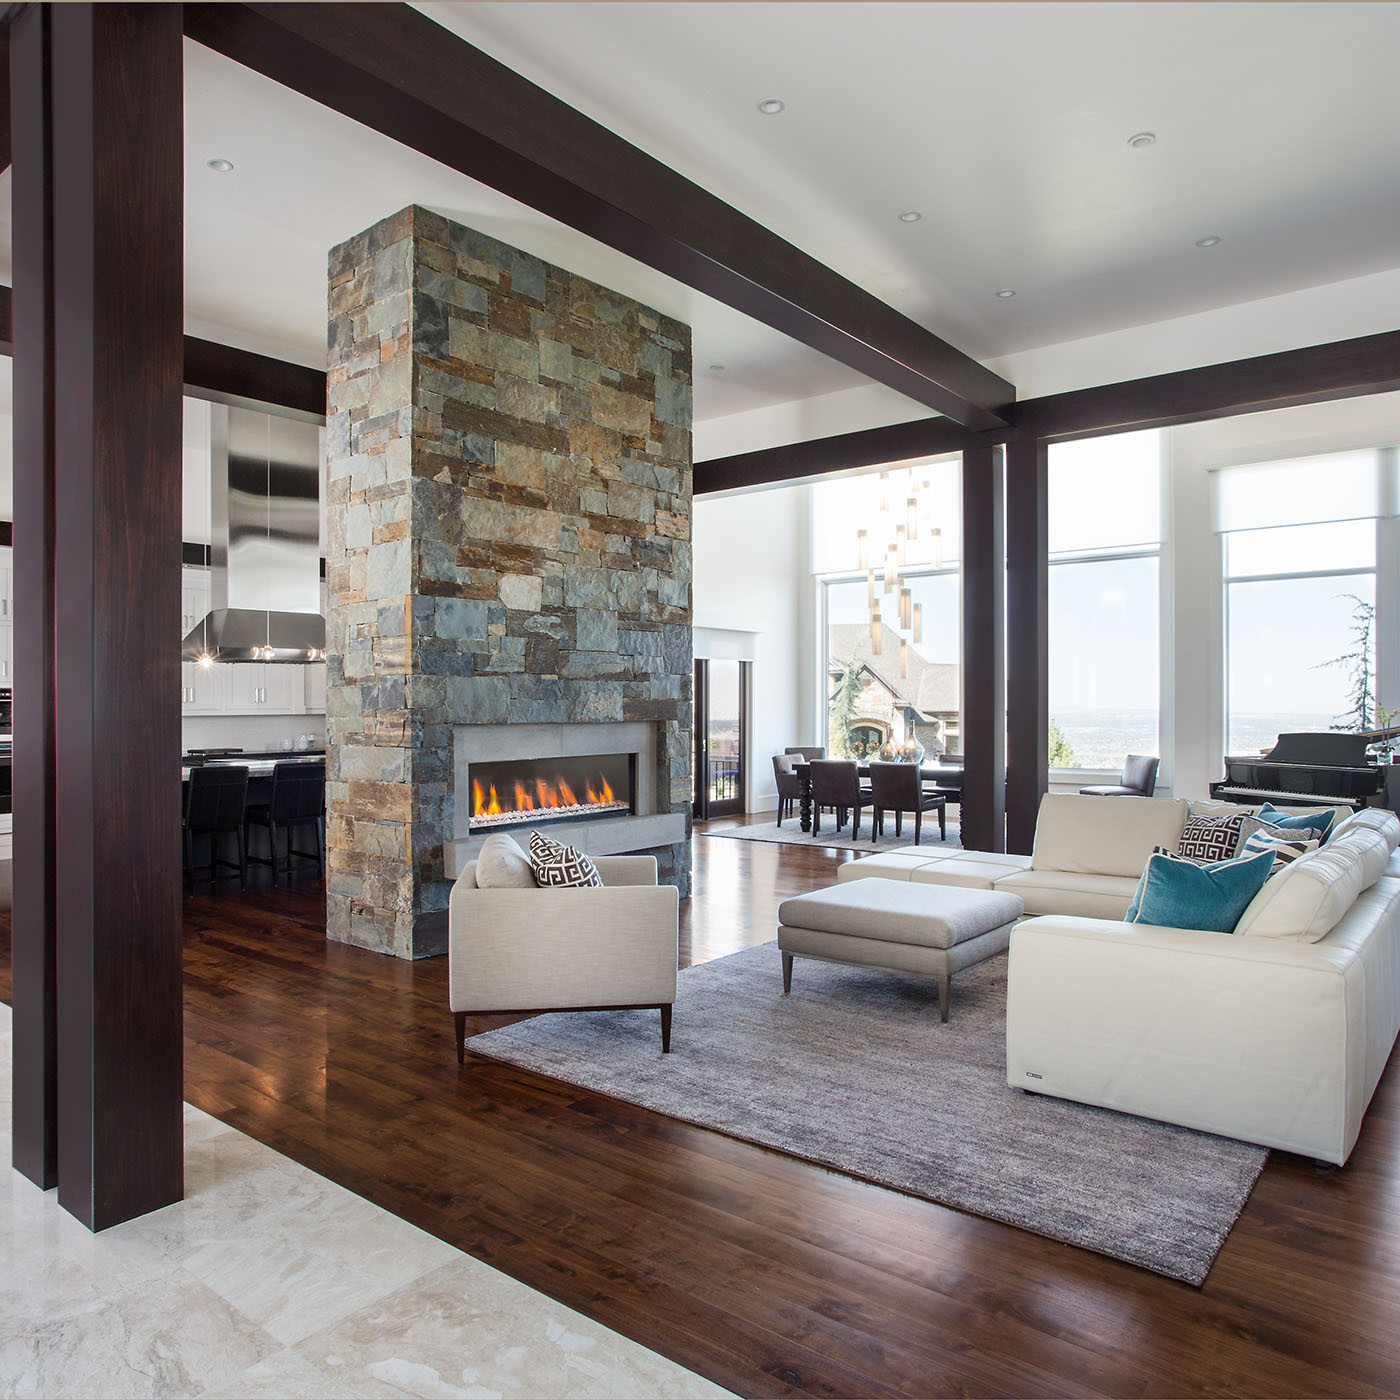 75 Beautiful Contemporary Formal Living Room Pictures Ideas December 2020 Houzz